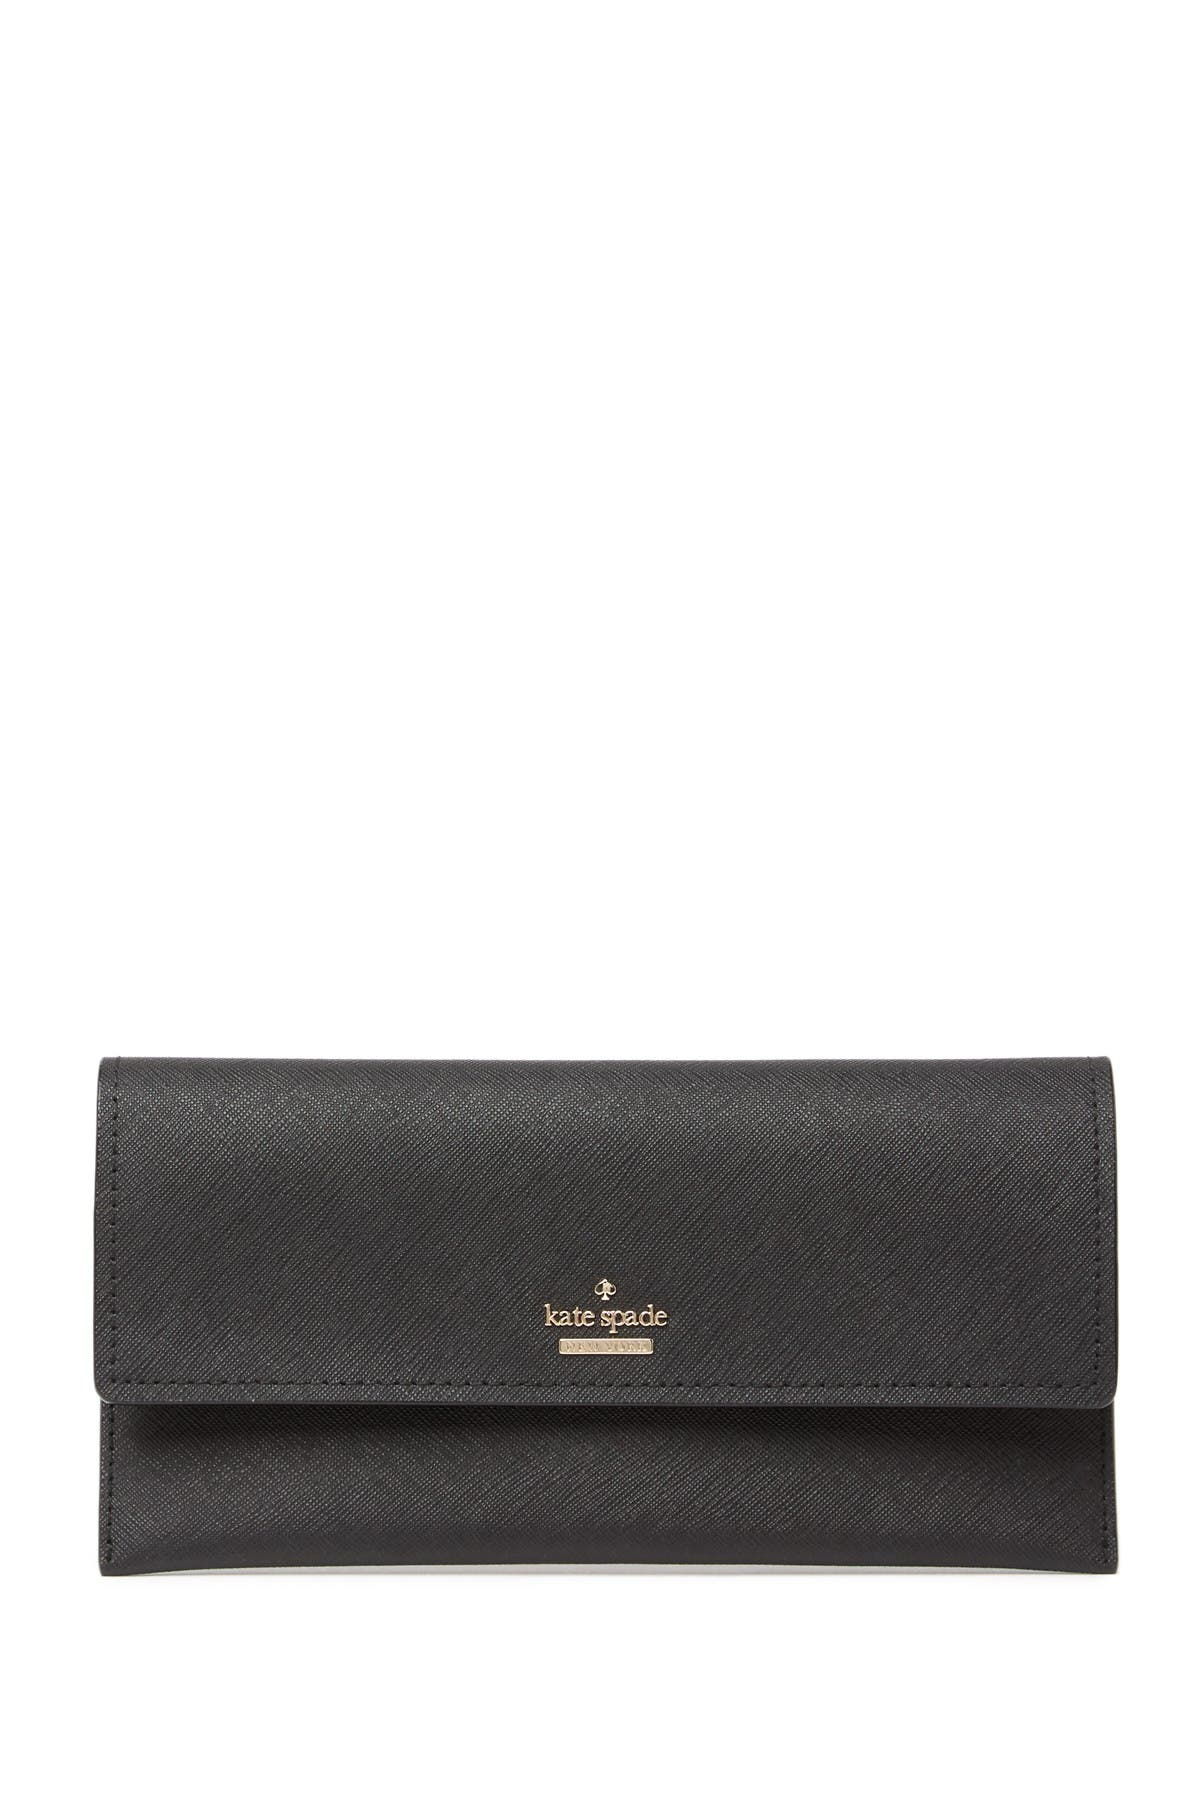 Image of kate spade new york harling leather wallet